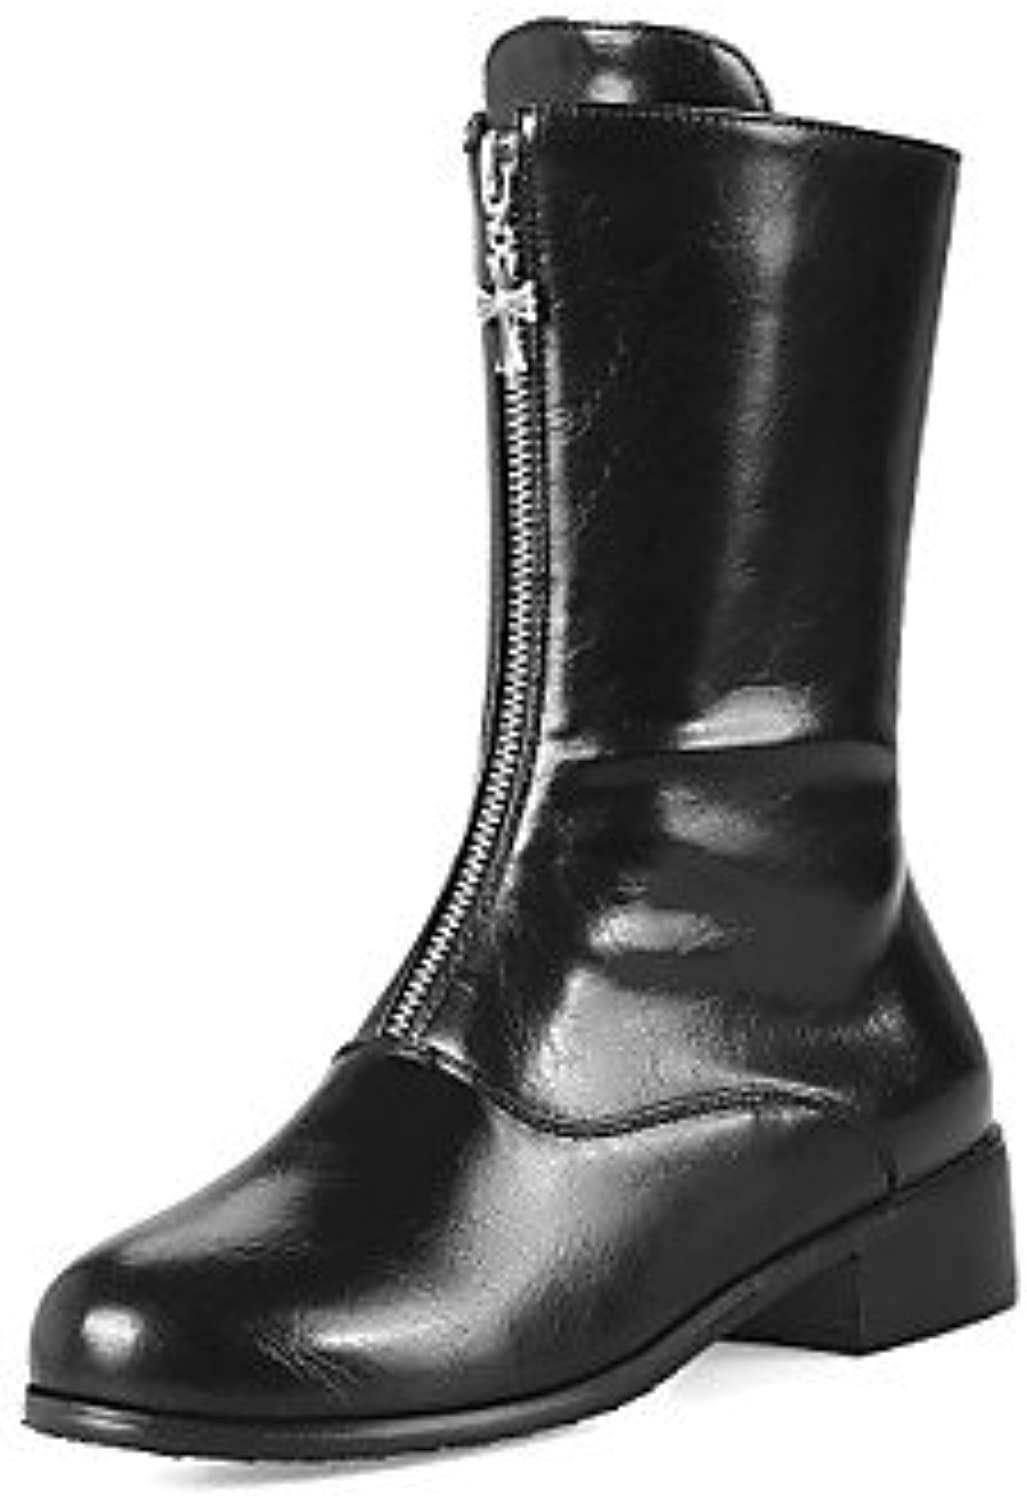 fc44270765c Women s Shoes Shoes Shoes Leatherette Fall Winter Fashion Boots Combat Boots  Boots Chunky Heel Round Toe